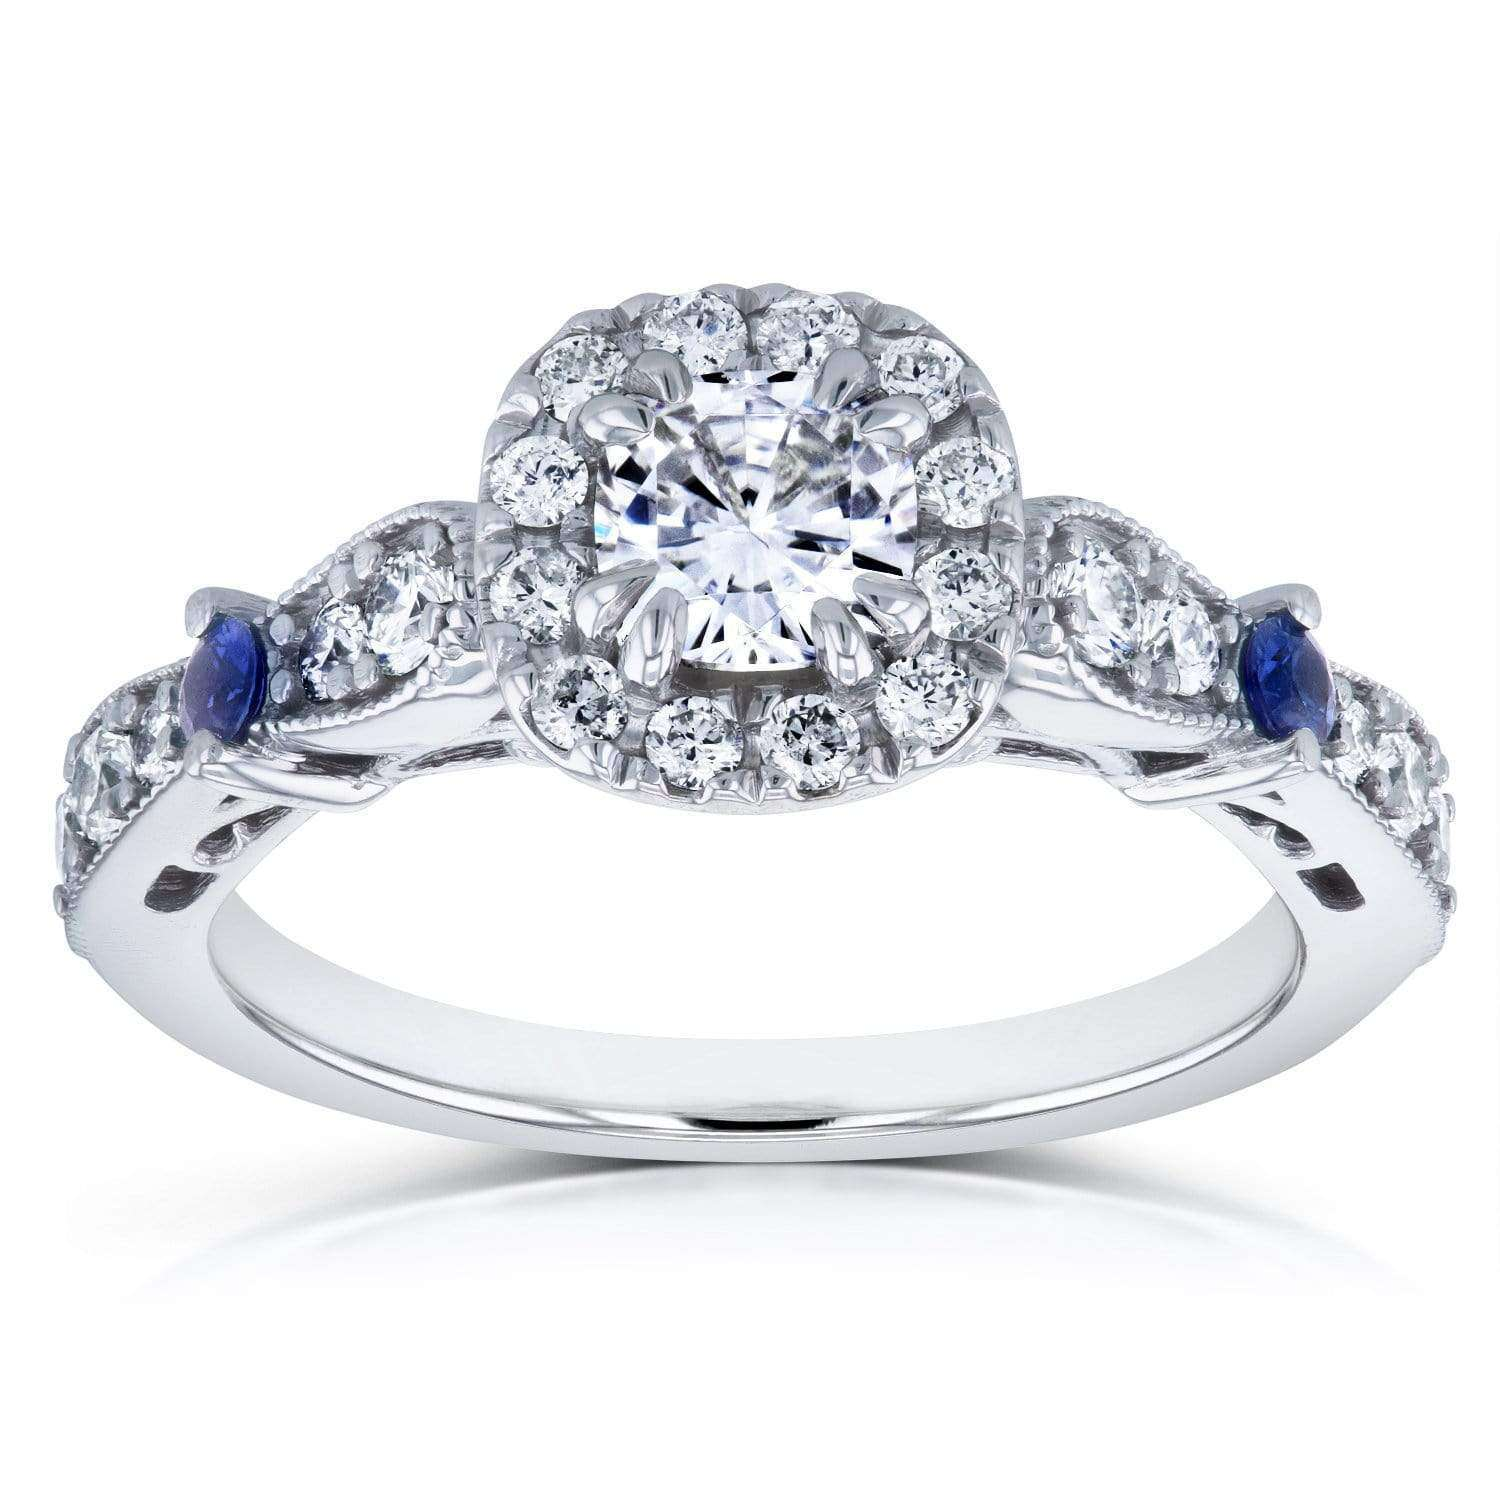 Promos Moissanite with Diamond and Sapphire Engagement Ring 1 CTW in 14k White Gold - 8.5